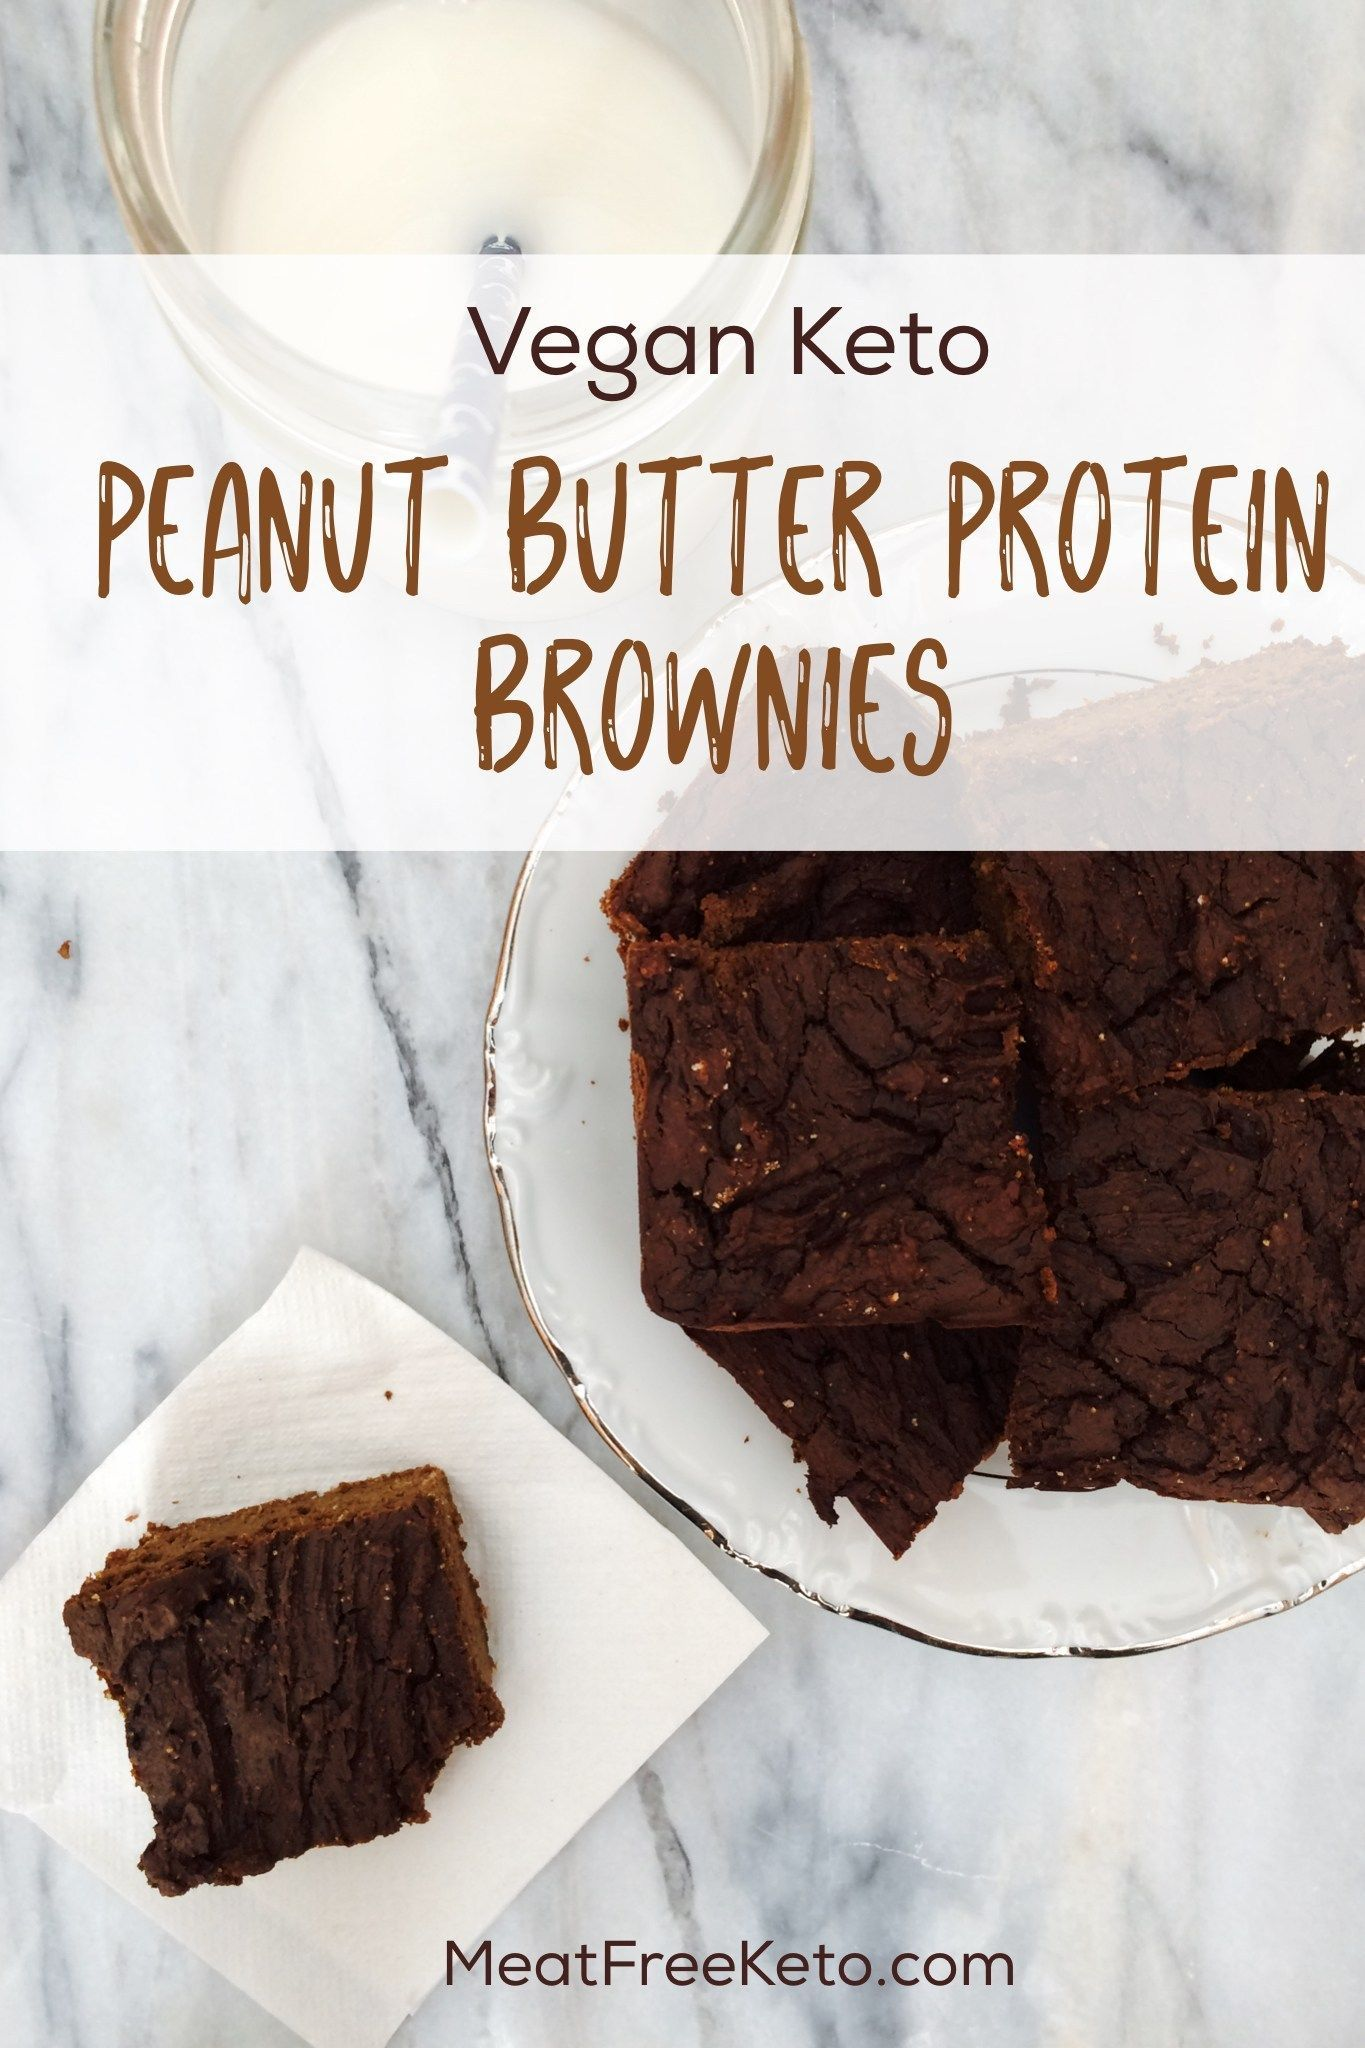 Keto Protein Brownies Vegan Keto Protein Brownies | Meat Free Ket o - a delicious gluten free, grain free, sugar free and low carb protein-filled treat!Vegan Keto Protein Brownies | Meat Free Ket o - a delicious gluten free, grain free, sugar free and low carb protein-filled treat!